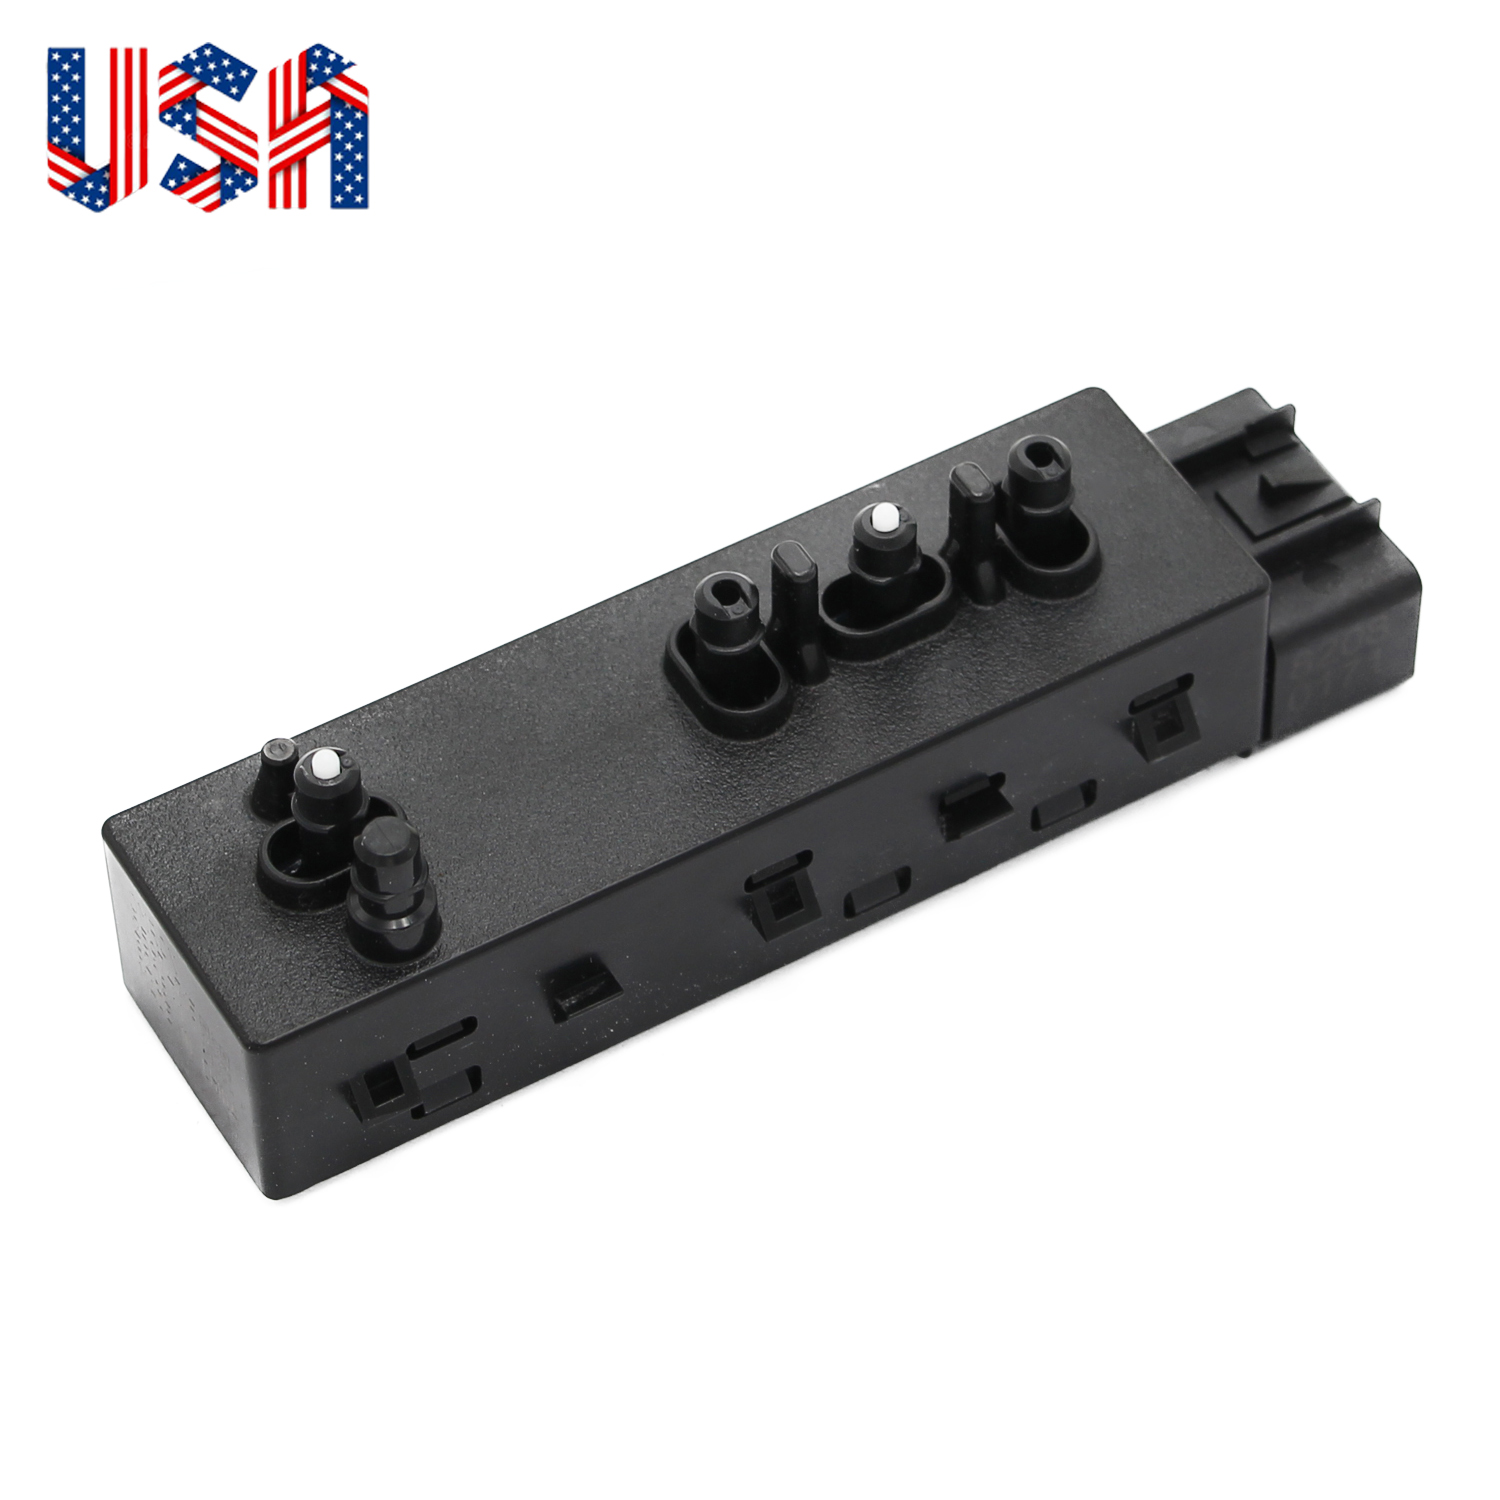 MOTOALL 8 Way Power Seat Switch 25974715 for Cadillac SRX Chevrolet GMC Buick Front Right Passenger Side Seat Adjuster Control Switch